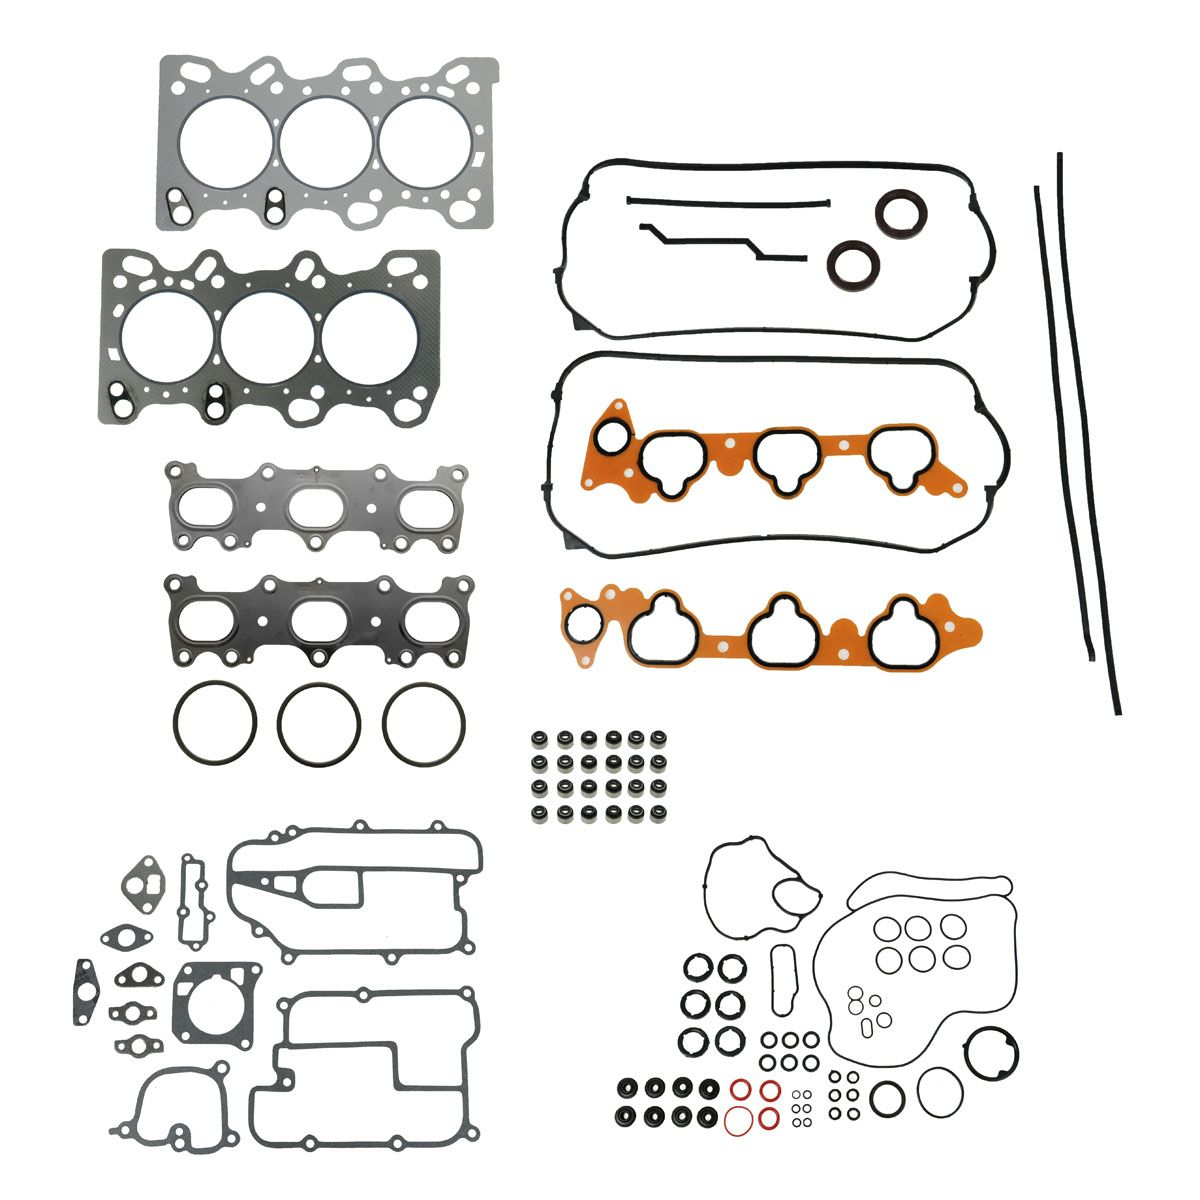 Engine Head Intake Exhaust Manifold Gasket Set Kit For